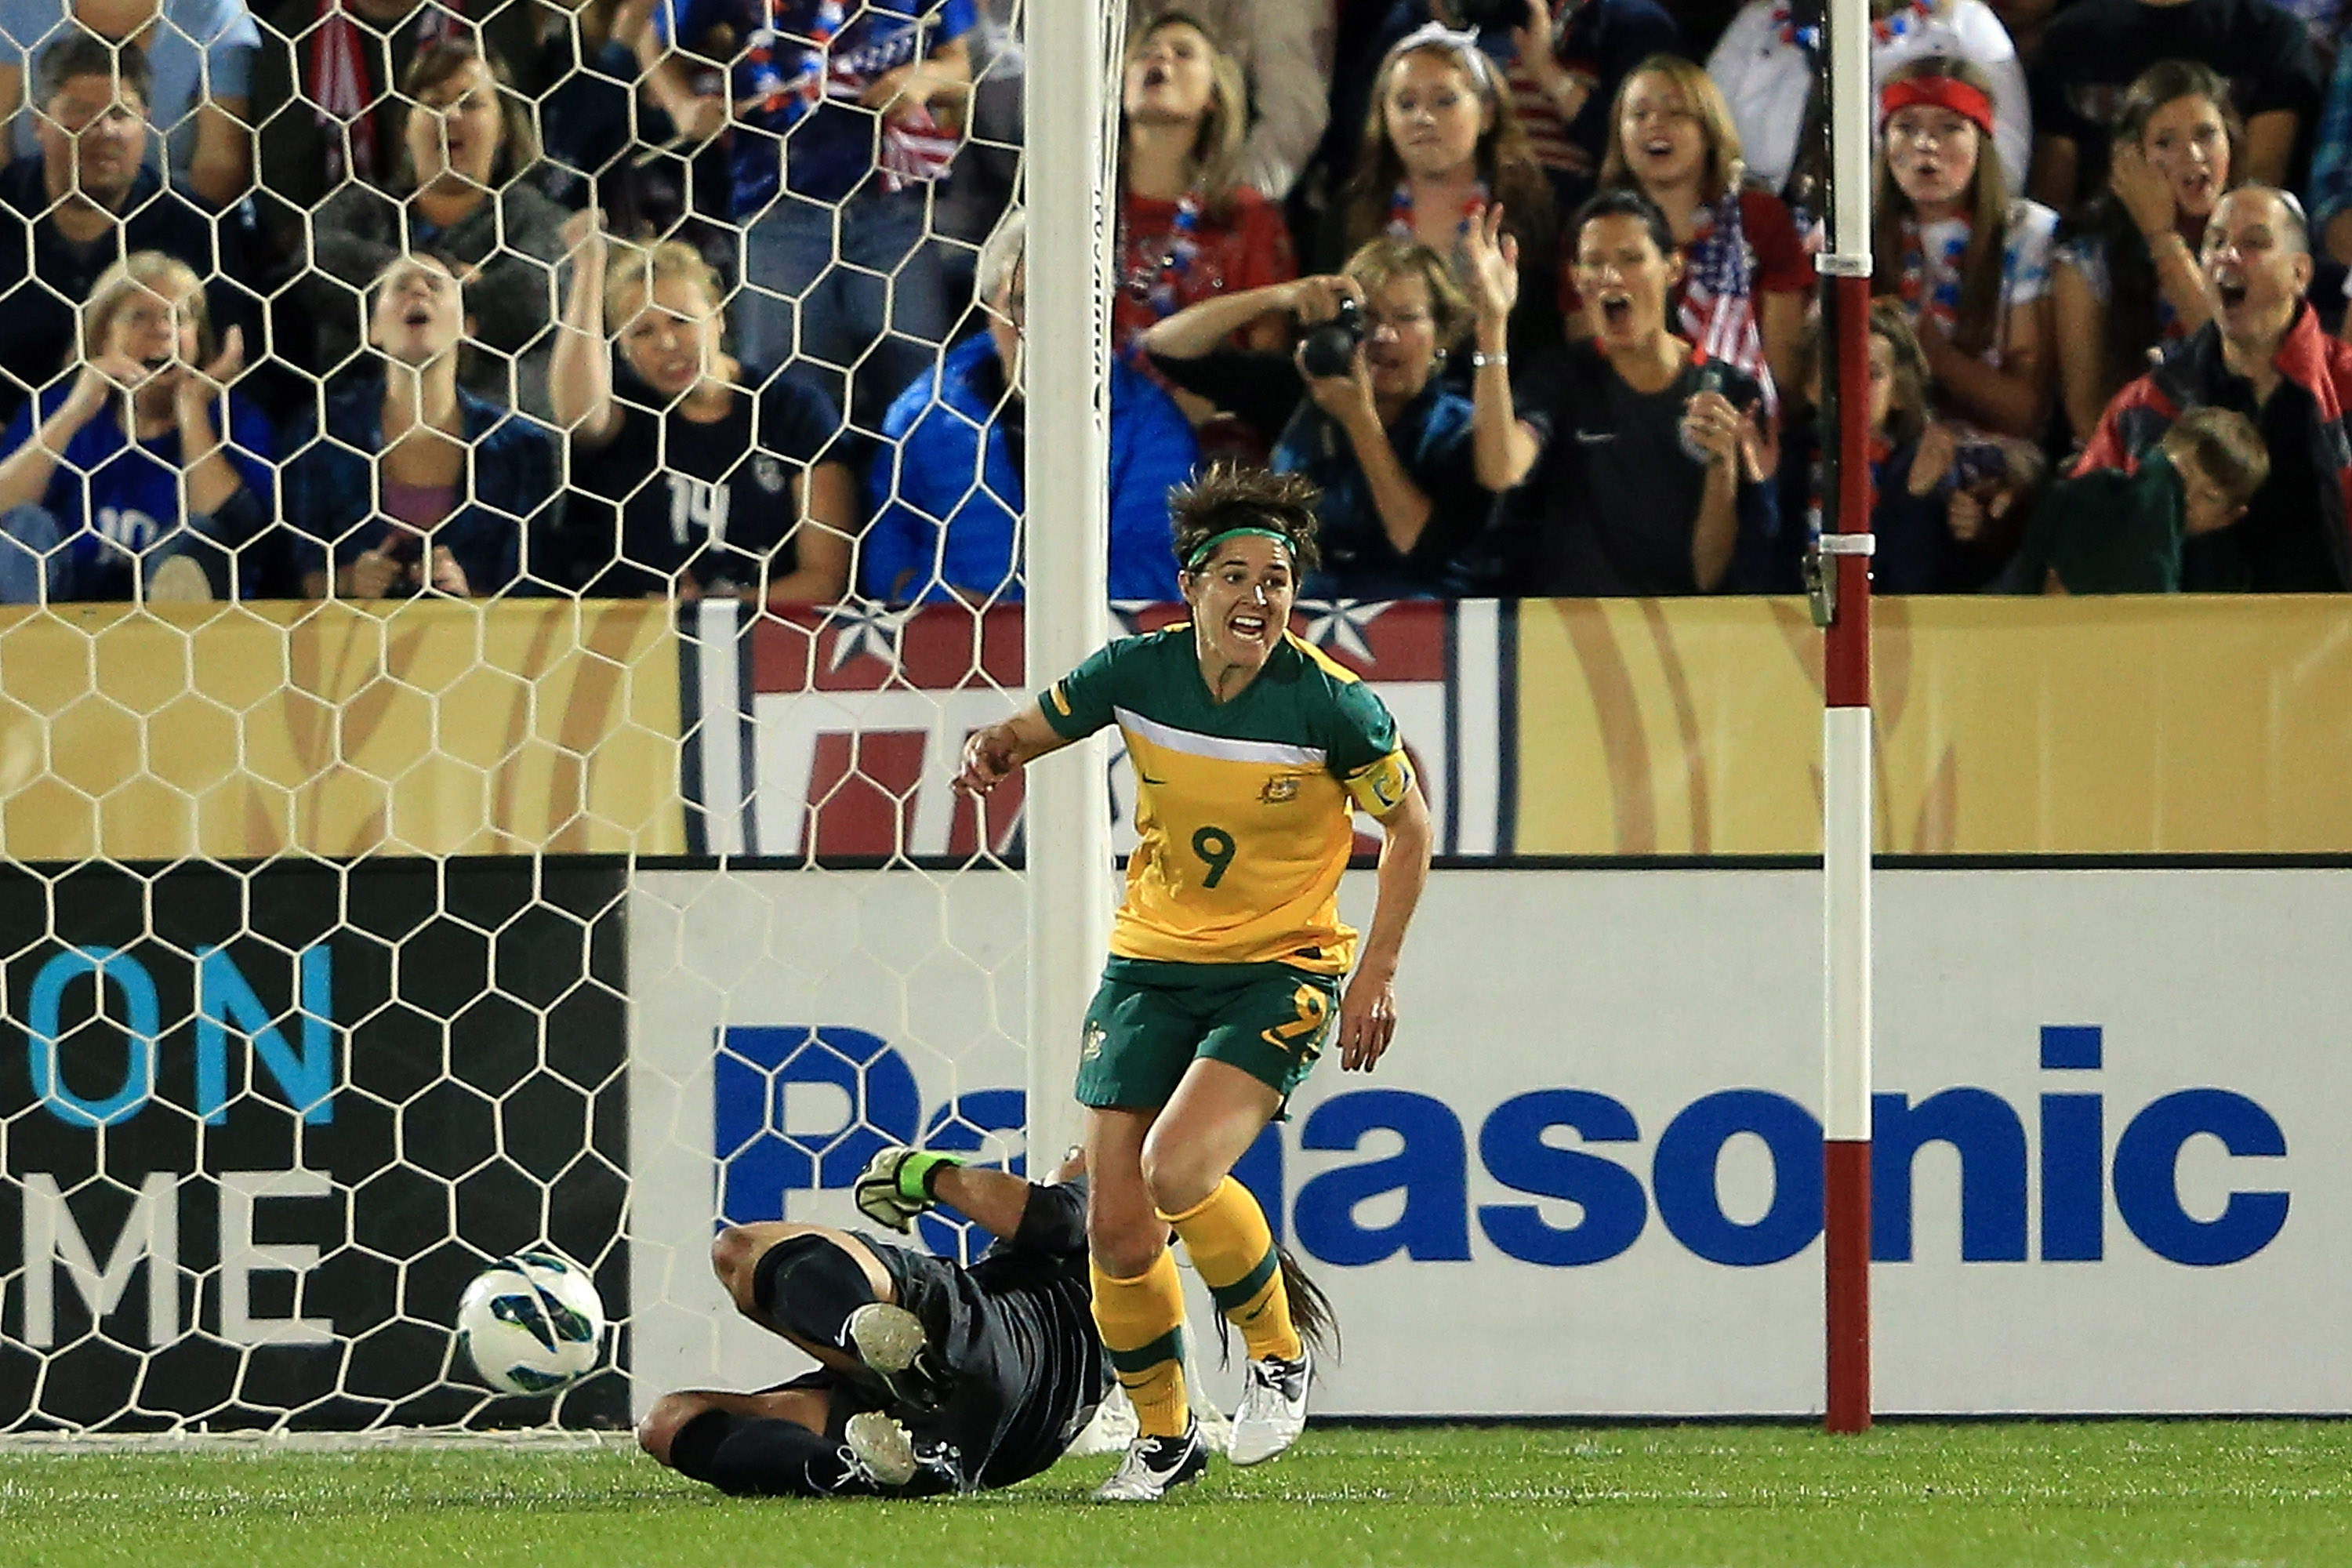 Walsh scored against the United States in her final game as a Westfield Matilda in 2012